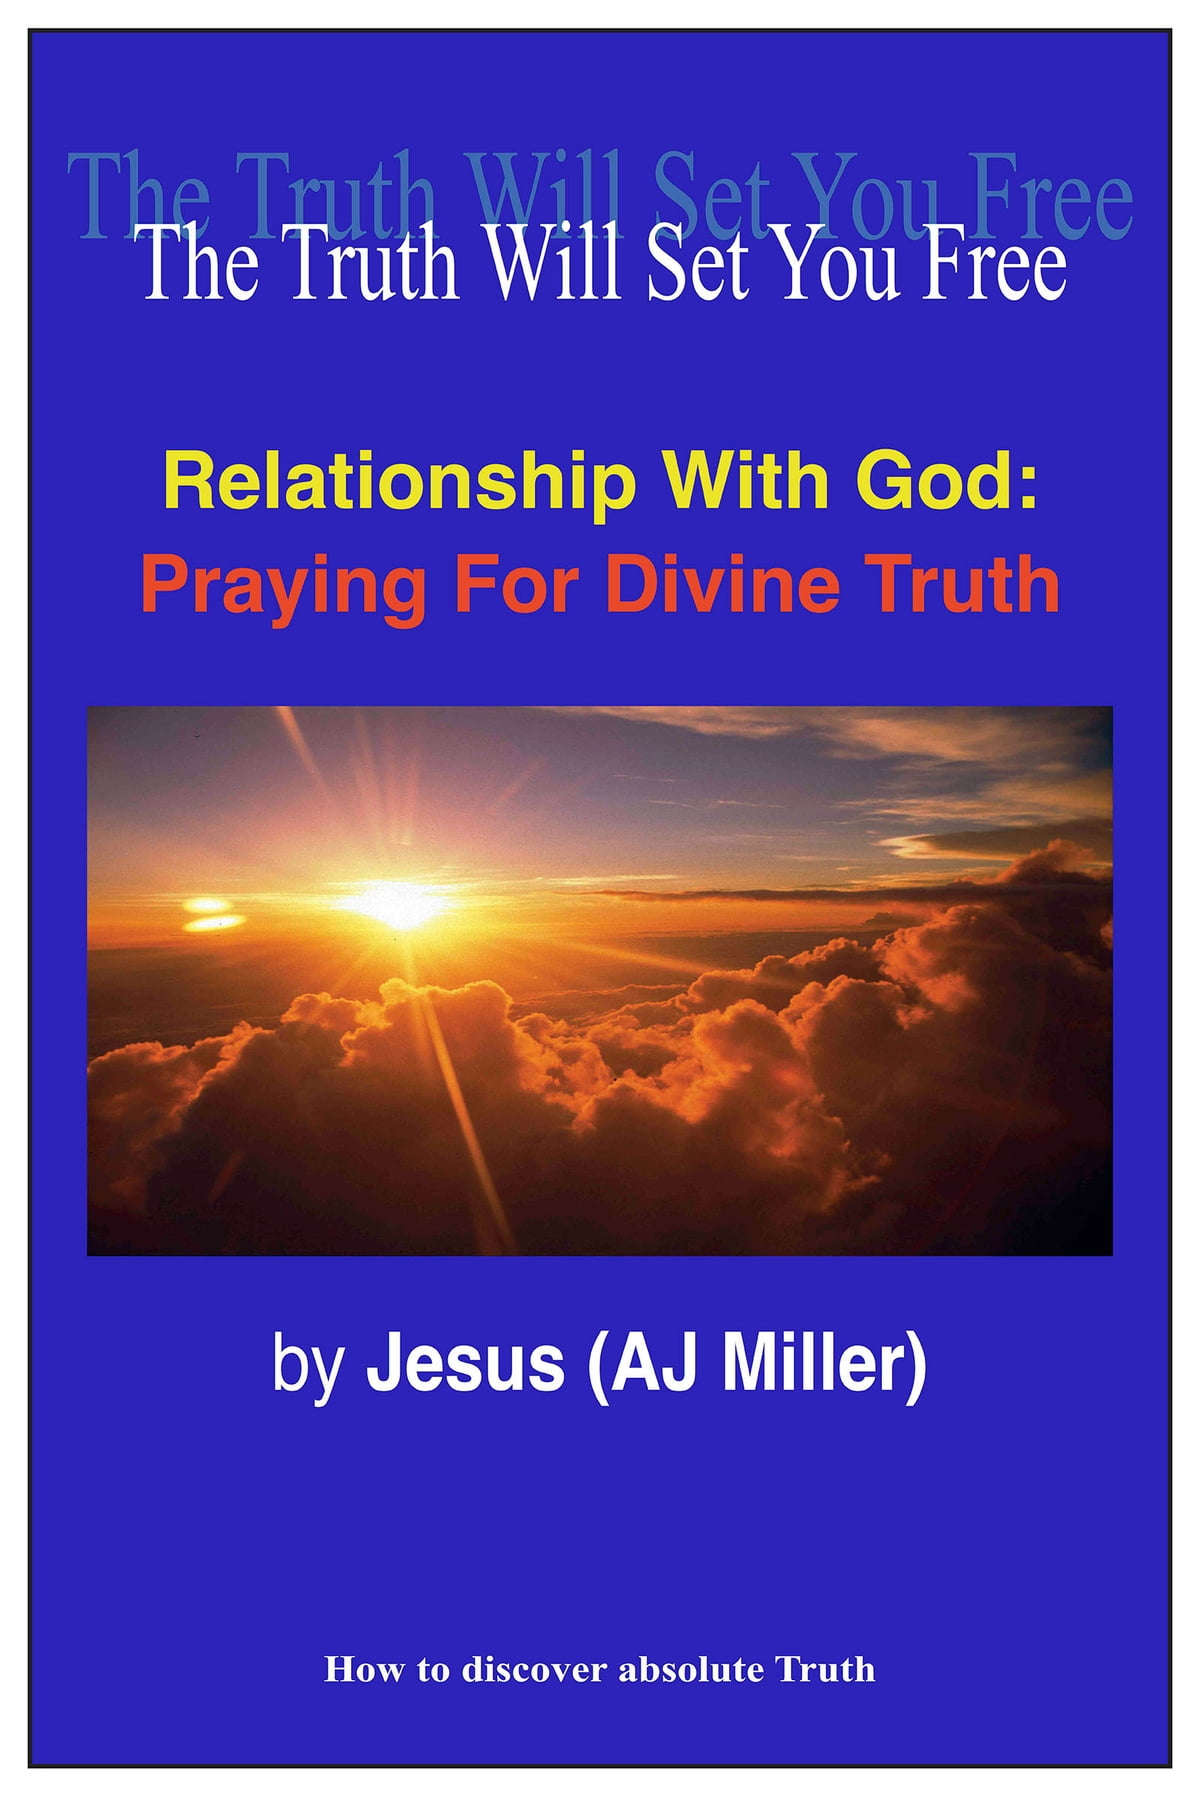 Relationship with God: Praying for Divine Truth eBook by